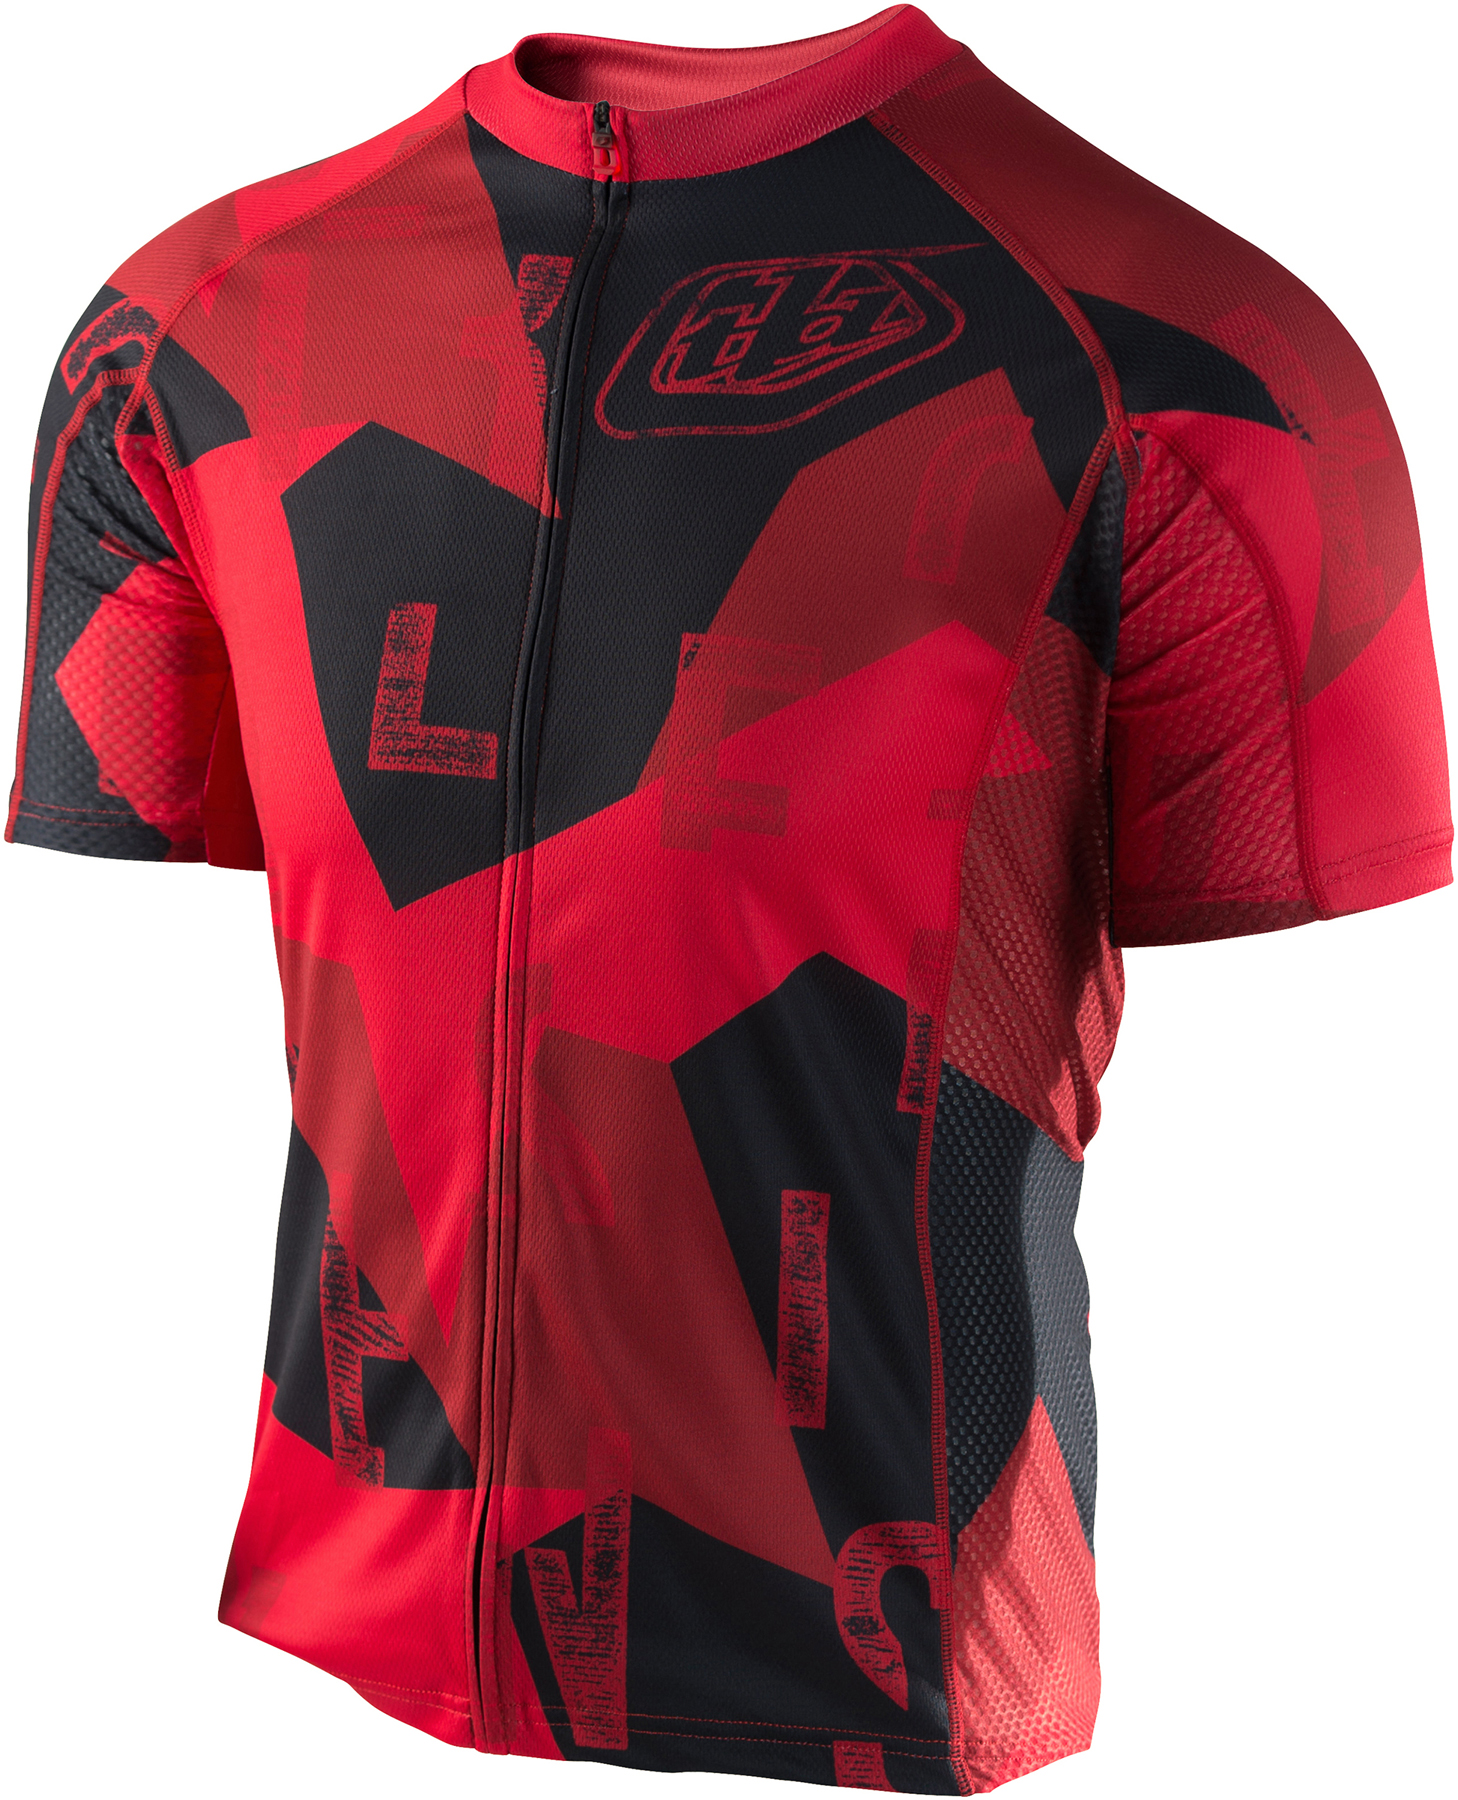 Troy Lee Designs Ace 2.0 Chop Trøje - Herre | Jerseys